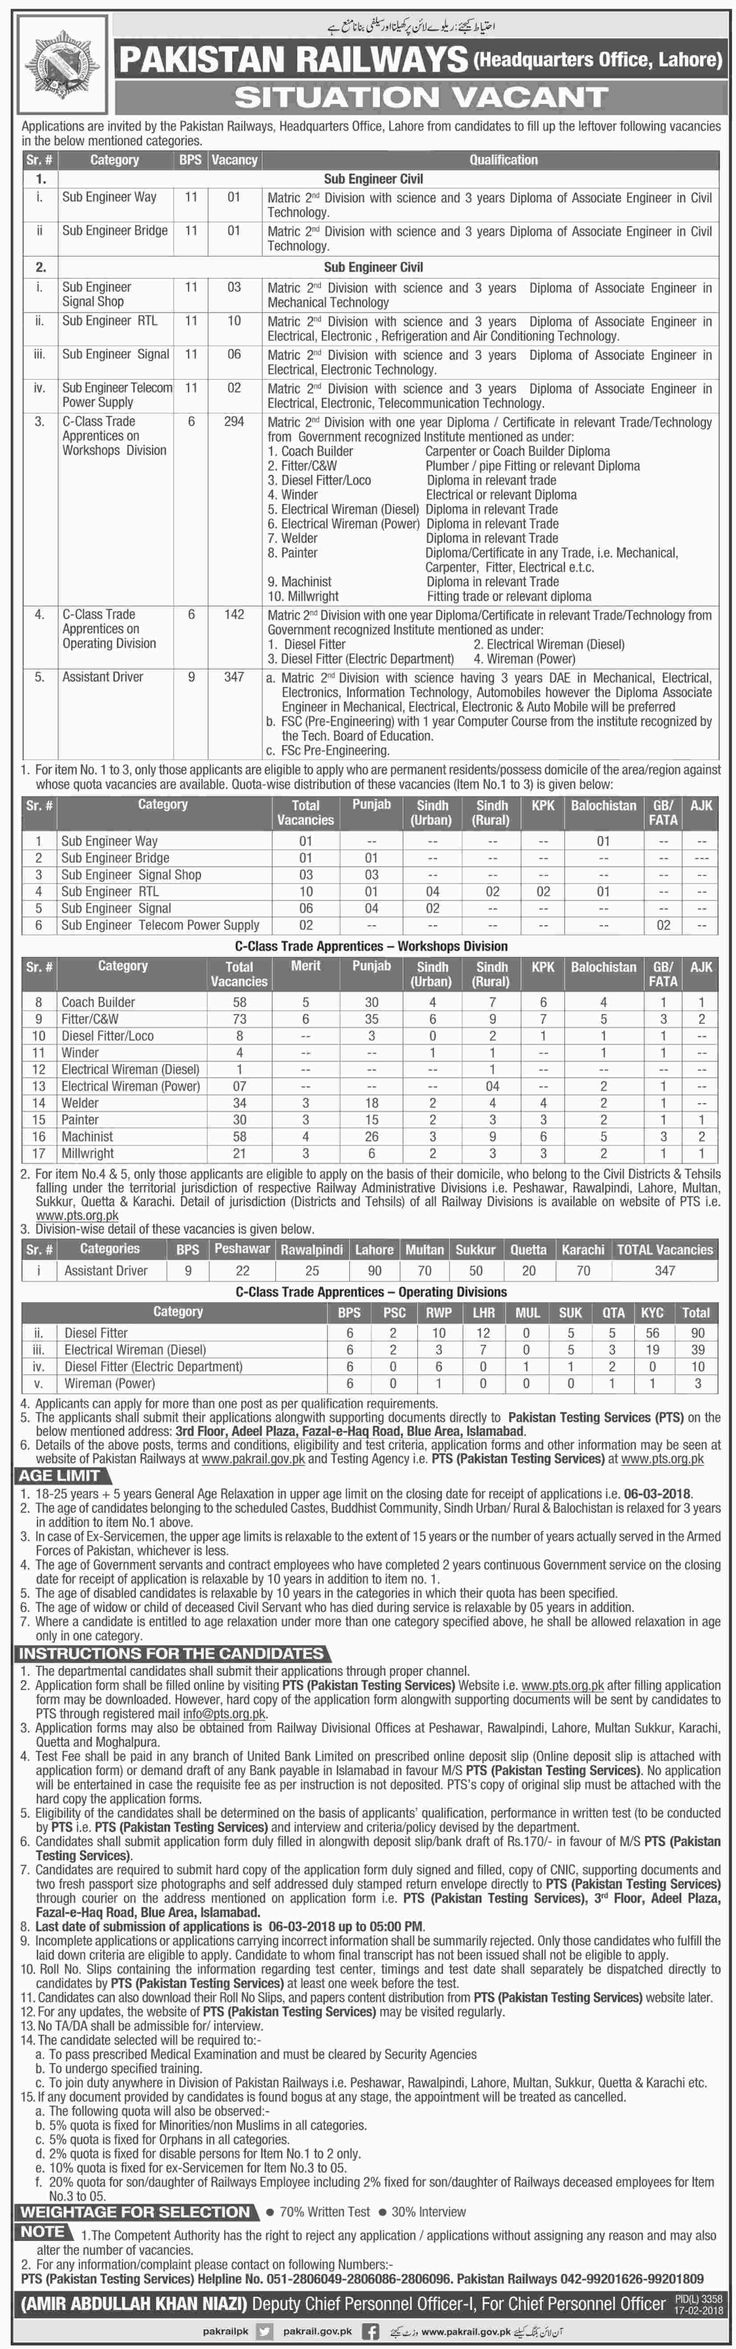 Pakistan Railway Jobs Lahore 19 February 2018 Jang Newspaper http://jobs.dailyepaper.pk/pakistan-railway-jobs-lahore-19-february-2018-jang-newspaper/